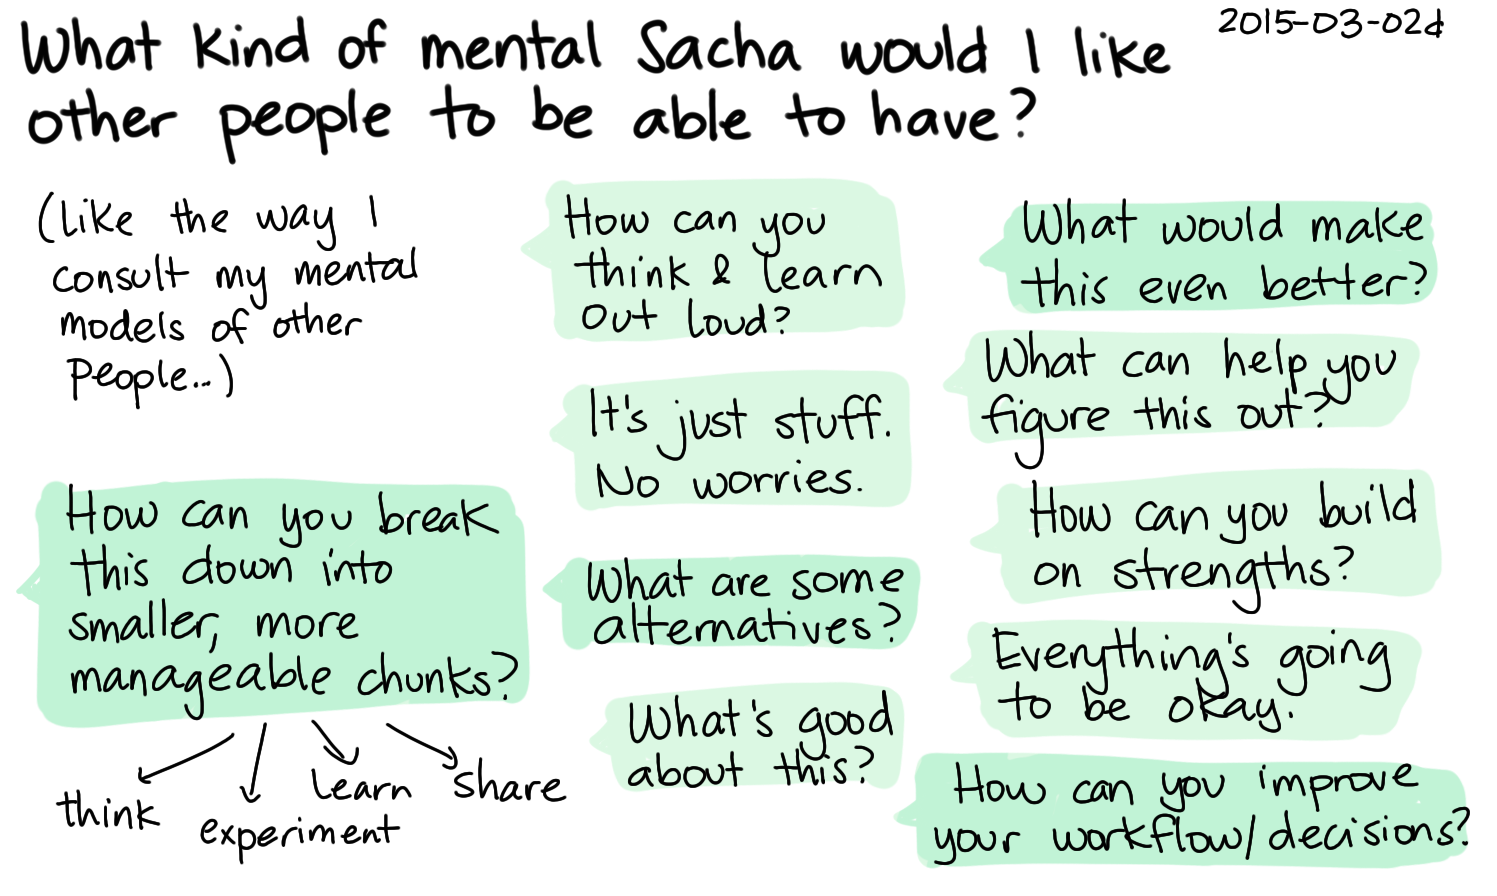 2015-03-02d What kind of mental Sacha would I like other people to be able to have -- index card #mental #model.png